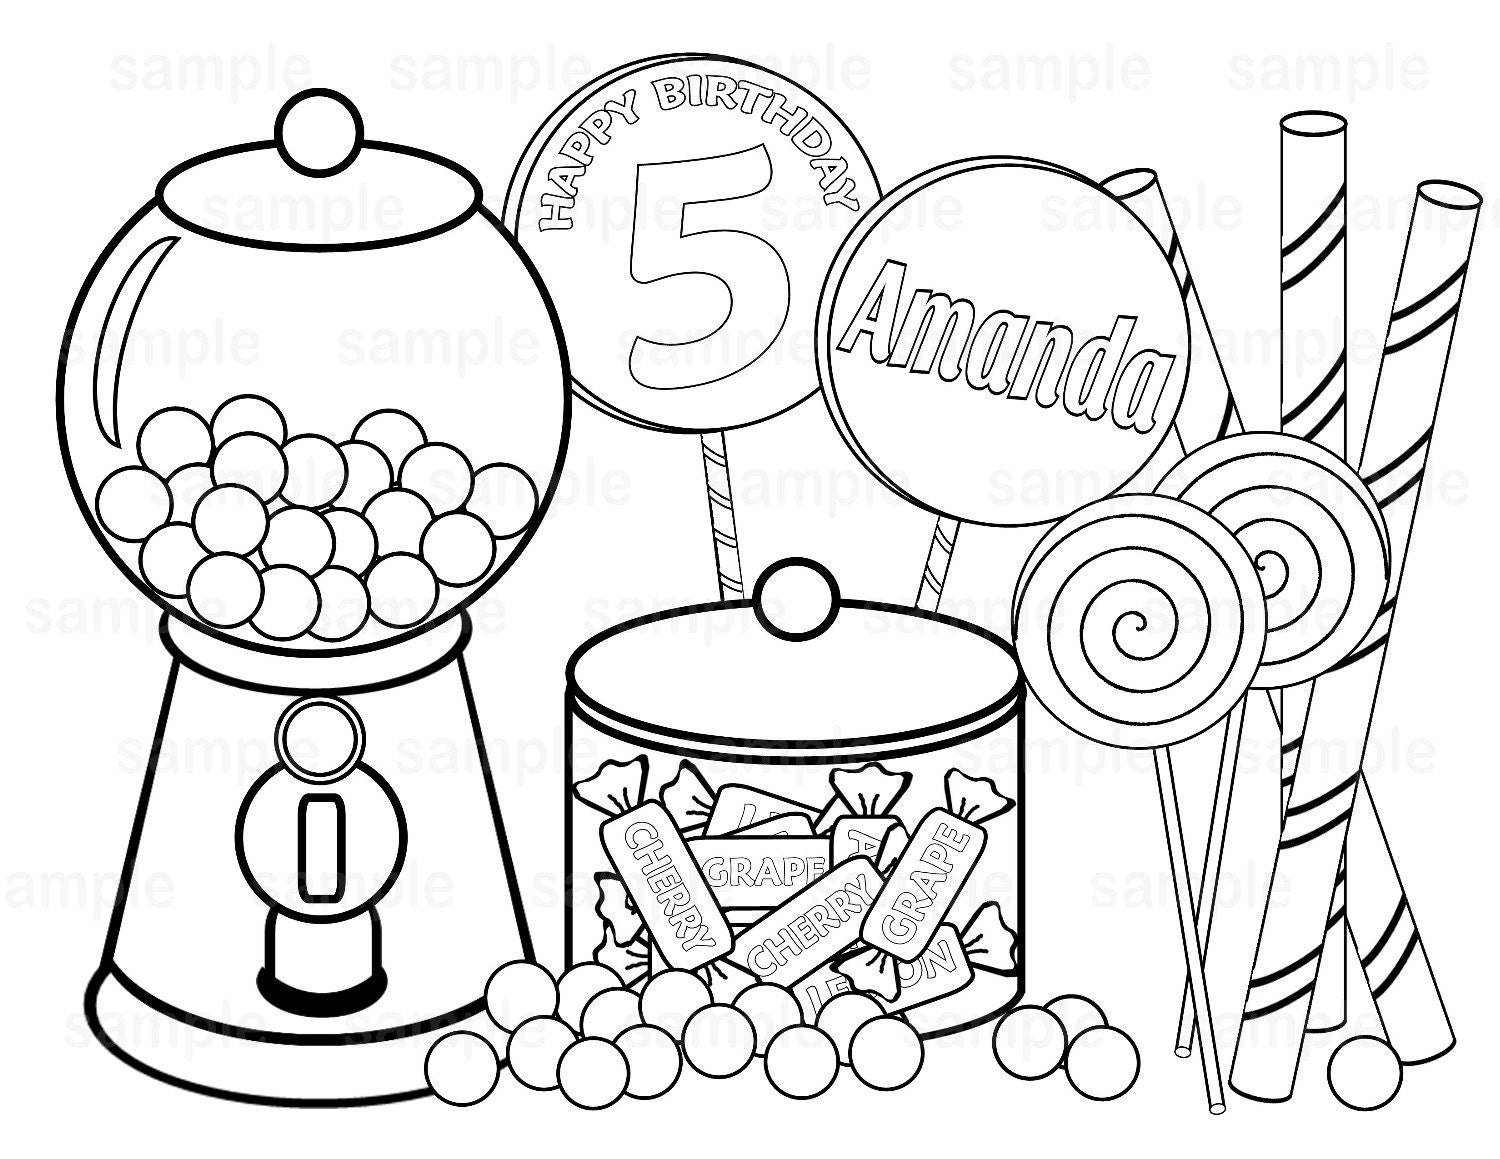 candy store coloring pages - personalized printable sweet shoppe candy by sugarpiestudio